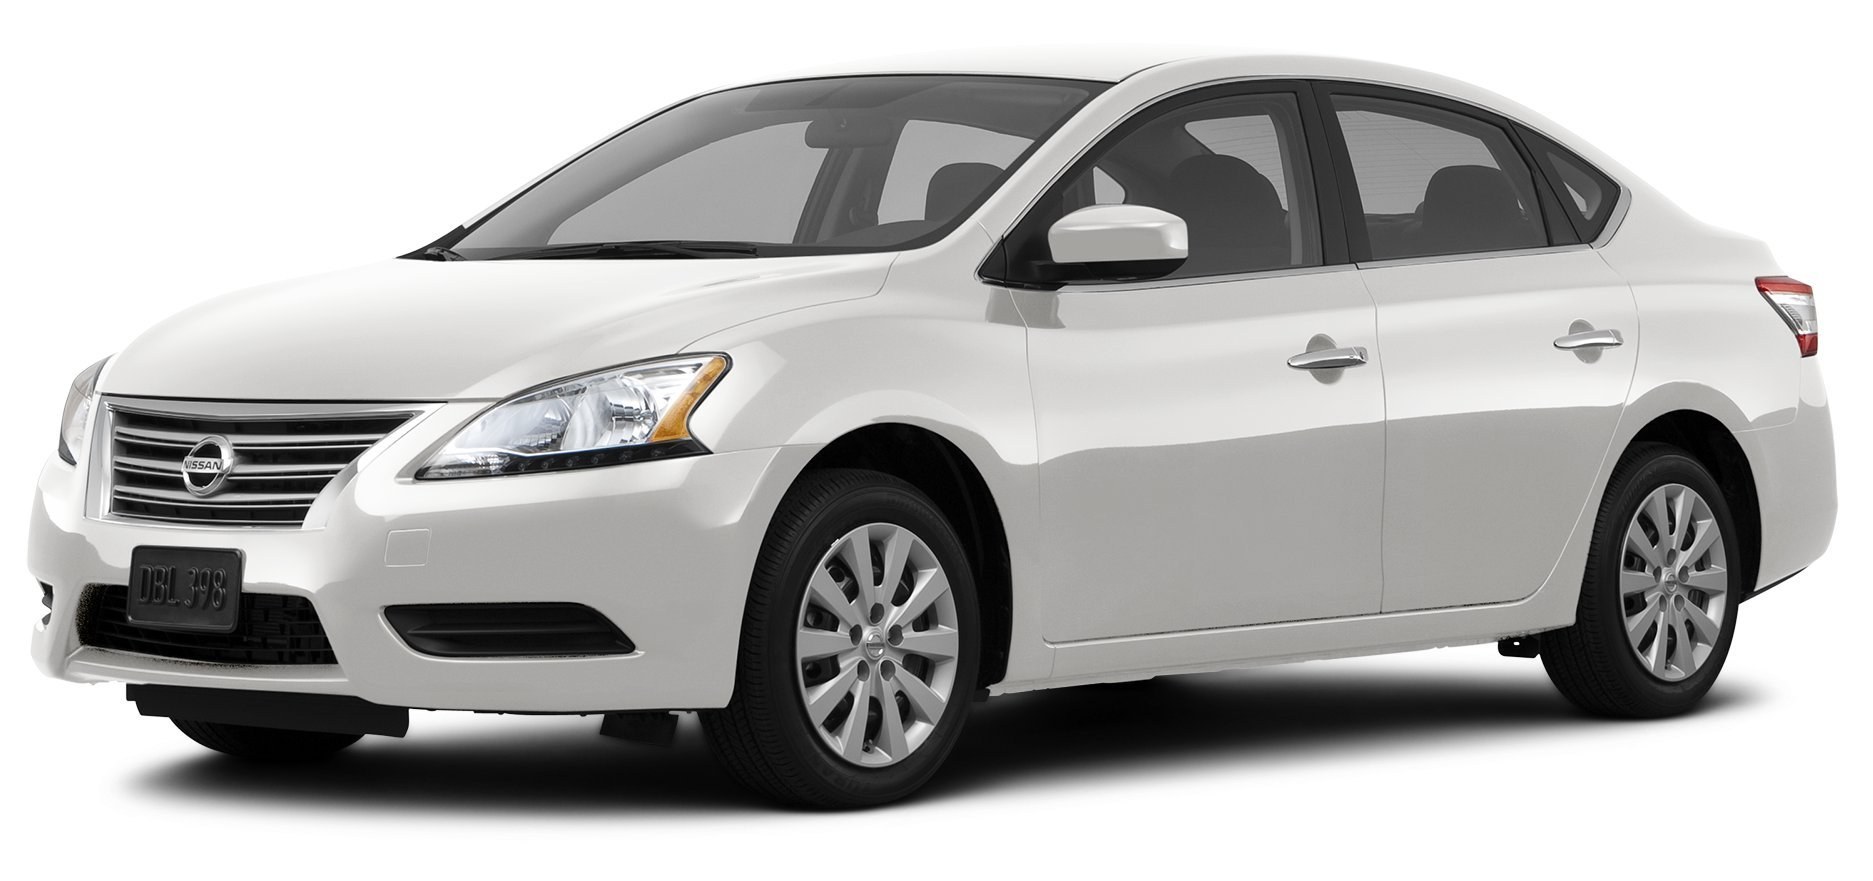 Amazon 2013 nissan sentra reviews images and specs vehicles 2013 nissan sentra fe s 4 door sedan 4 cylinder cvt vanachro Image collections